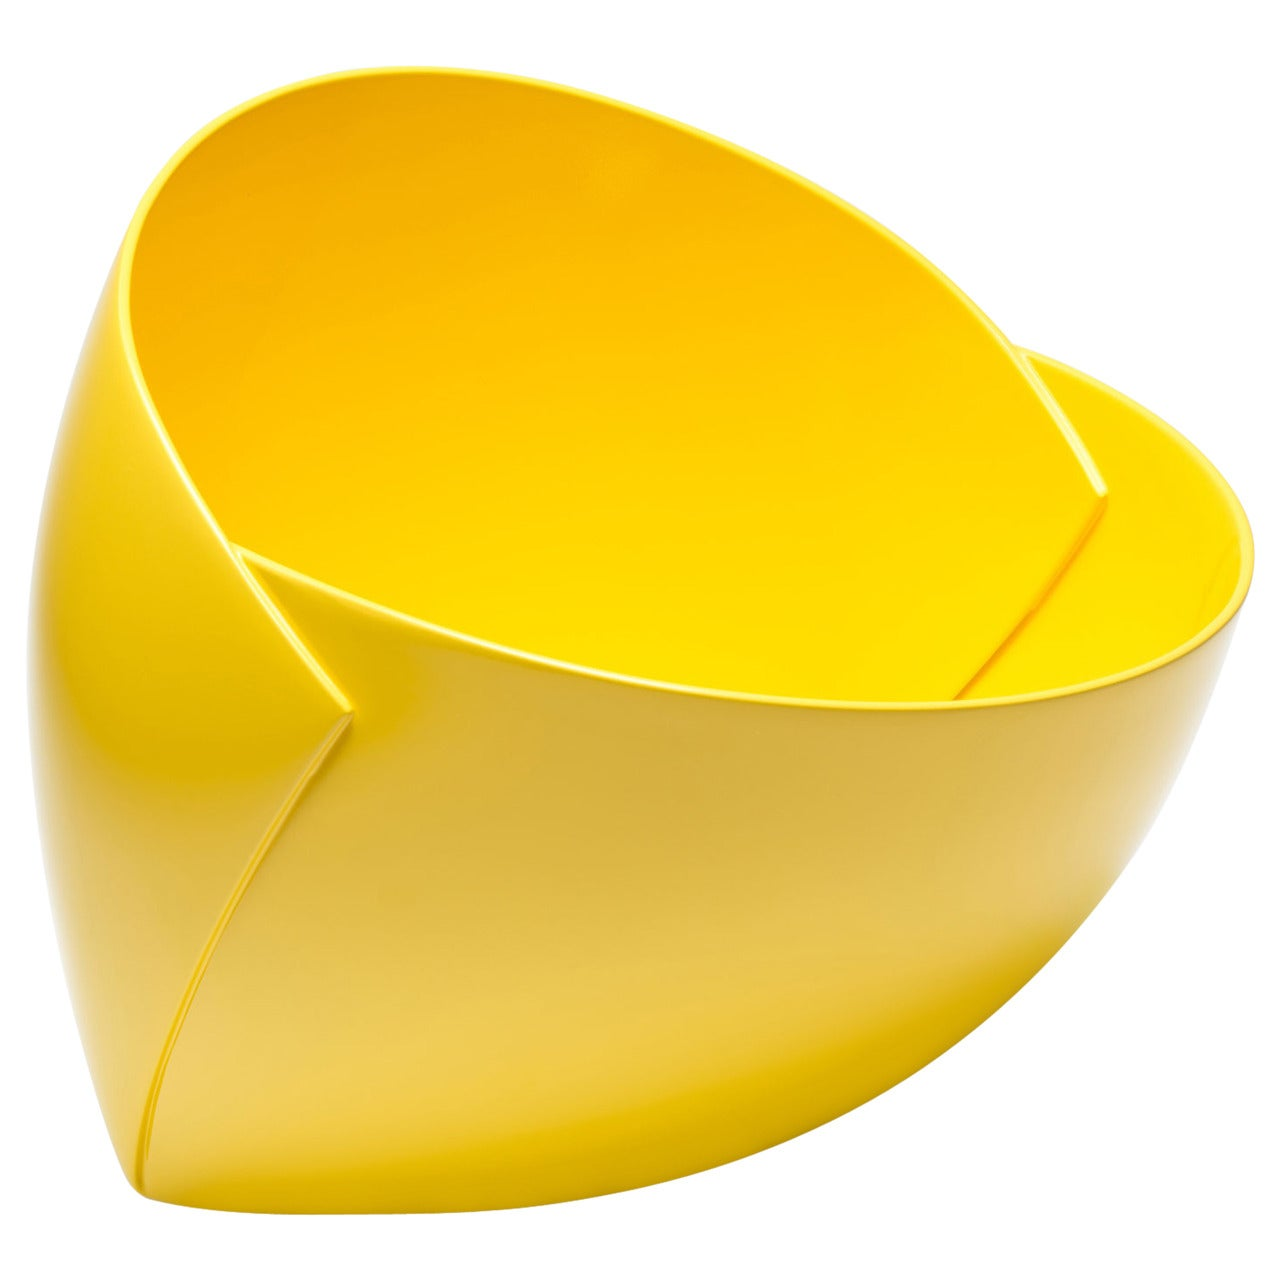 Yellow Origami Bowl by Ann Van Hoey